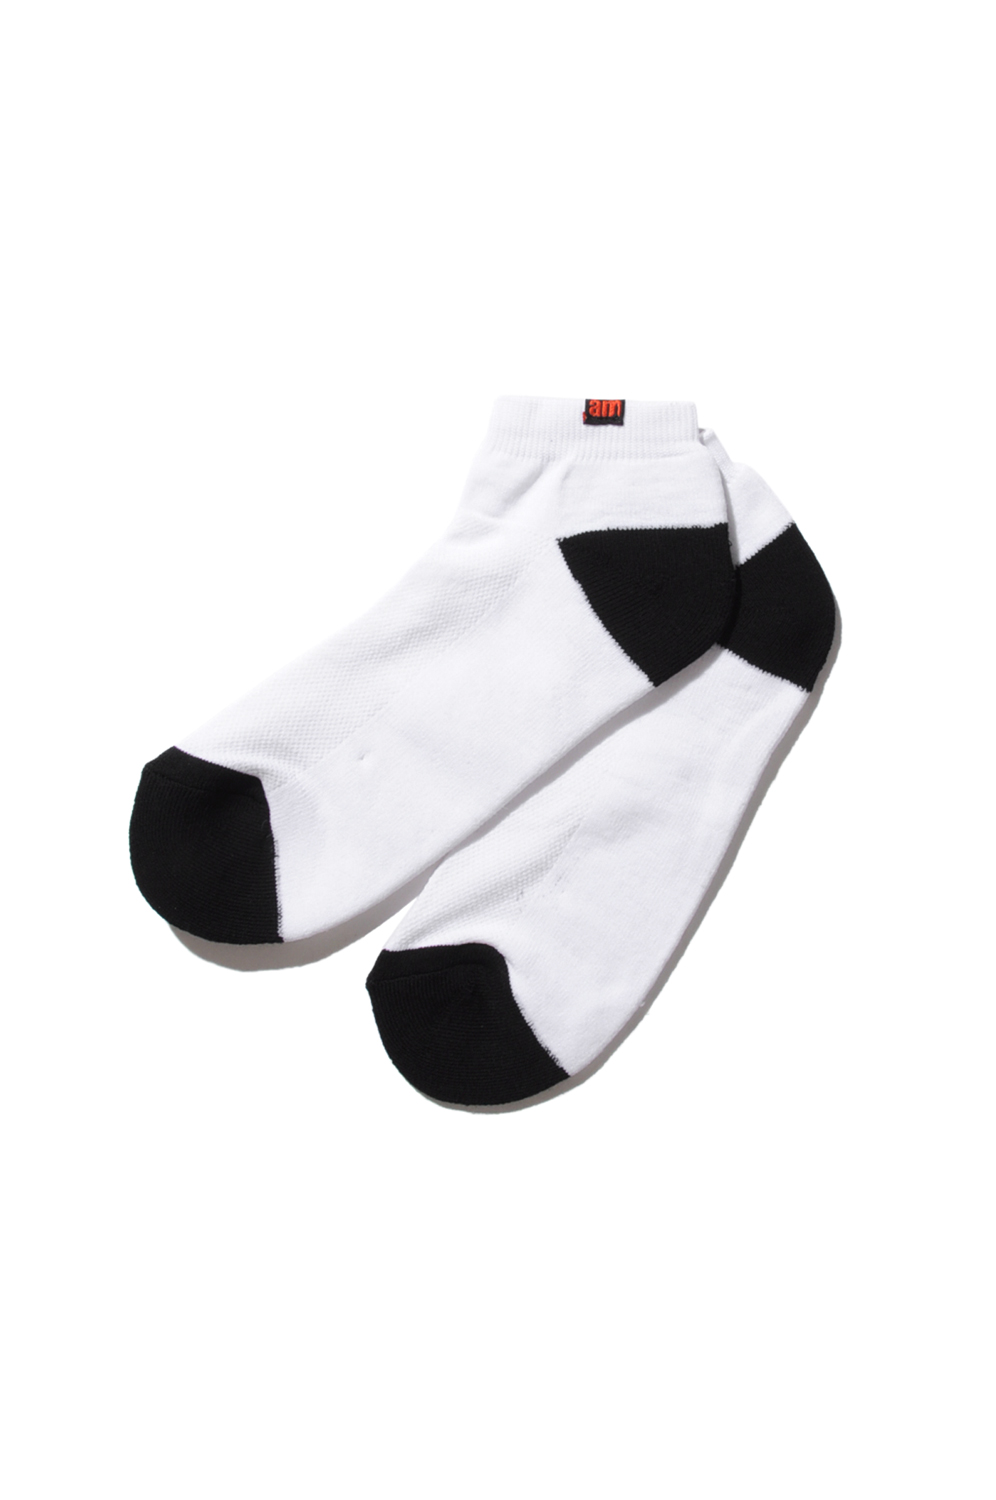 画像2: 【am】AM LOGO SHORT SOCKS